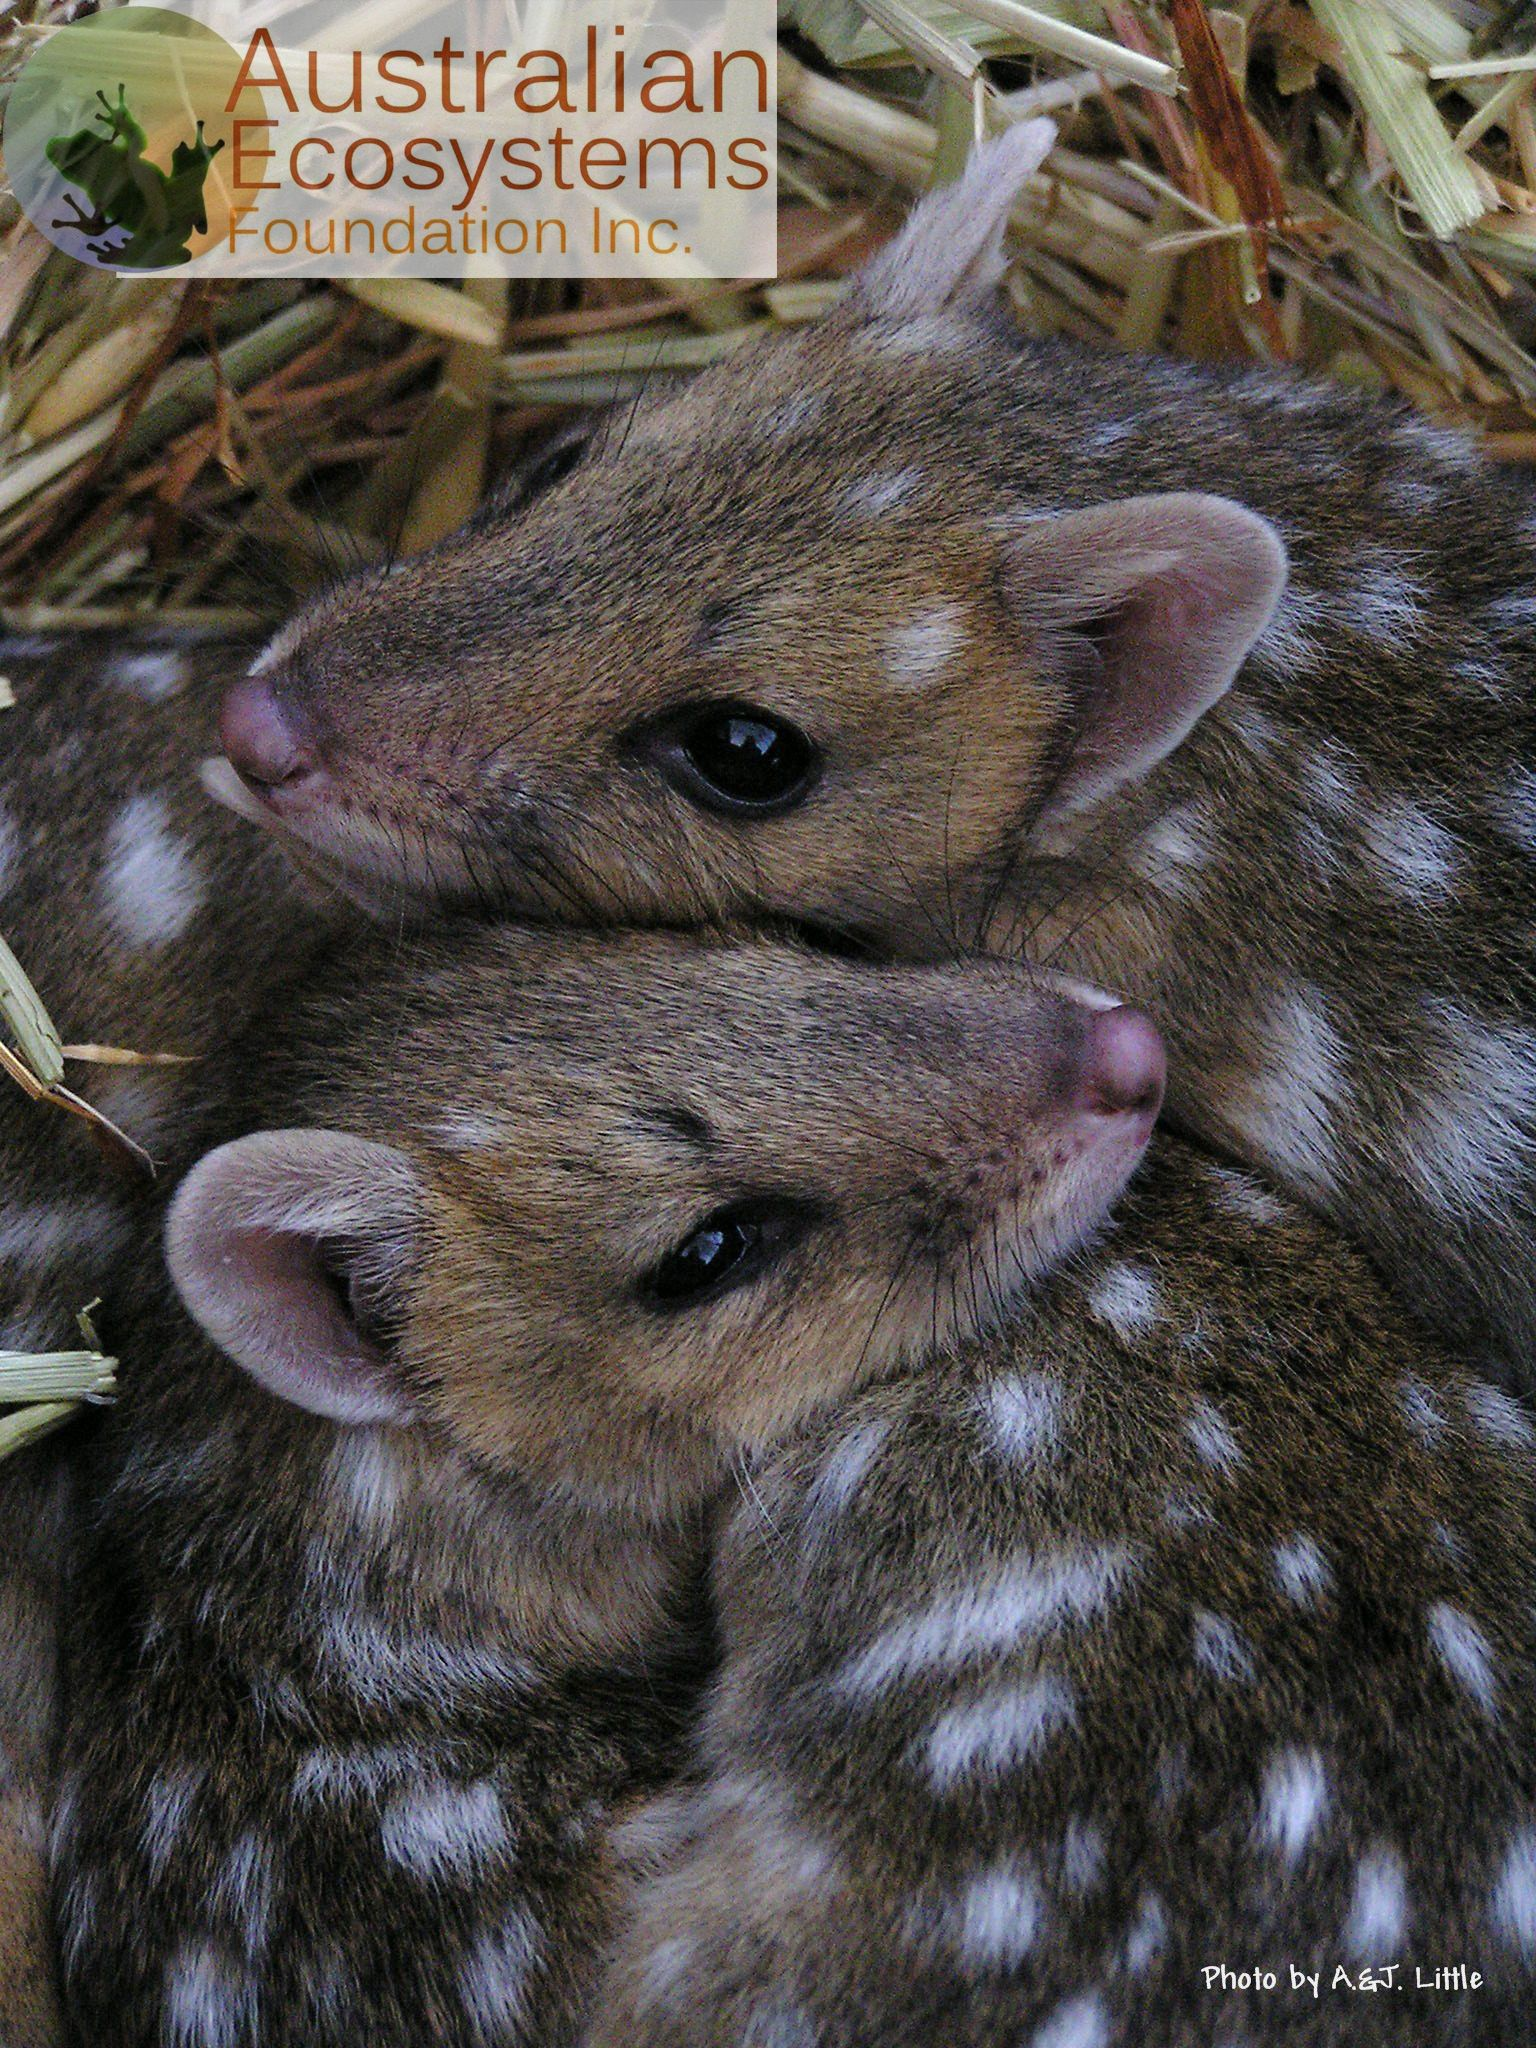 Quoll, a small nocturnal carnivorous marsupial. Once they